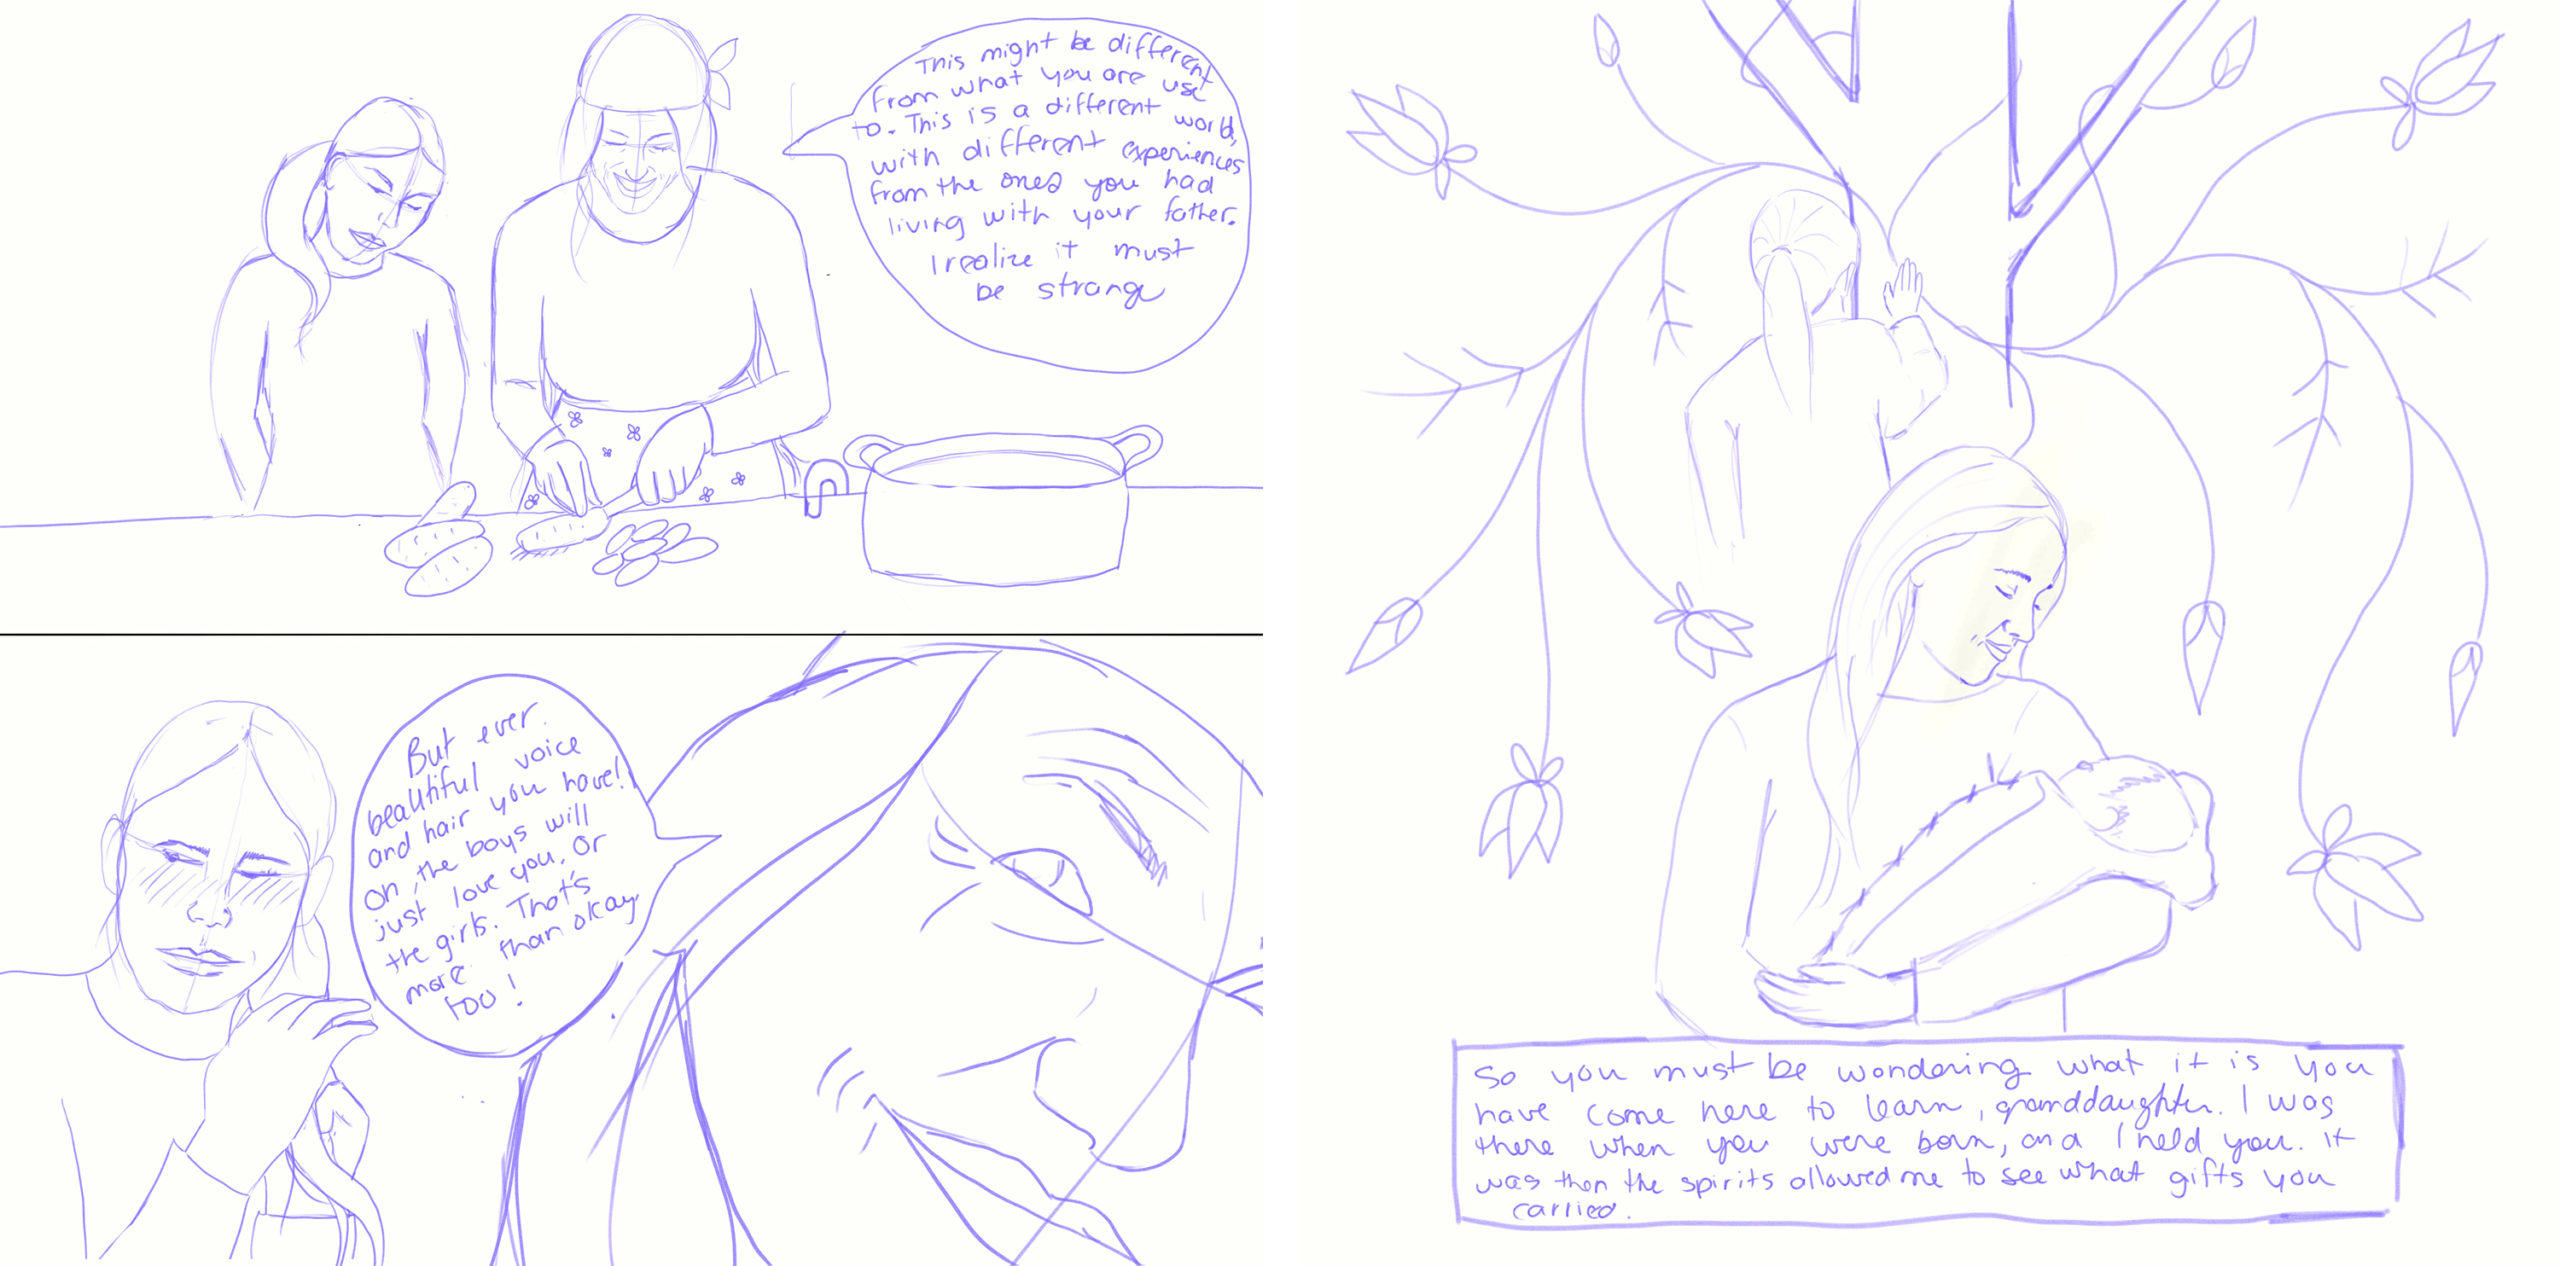 Sample of graphic novel panels done by Monique Bedard (Aura), for Manidoo Makwa: Spirit Bear. It shows outline drawings of a young Indigenous character and their grandmother. The panels also feature caption and speech bubbles with handwritten text.